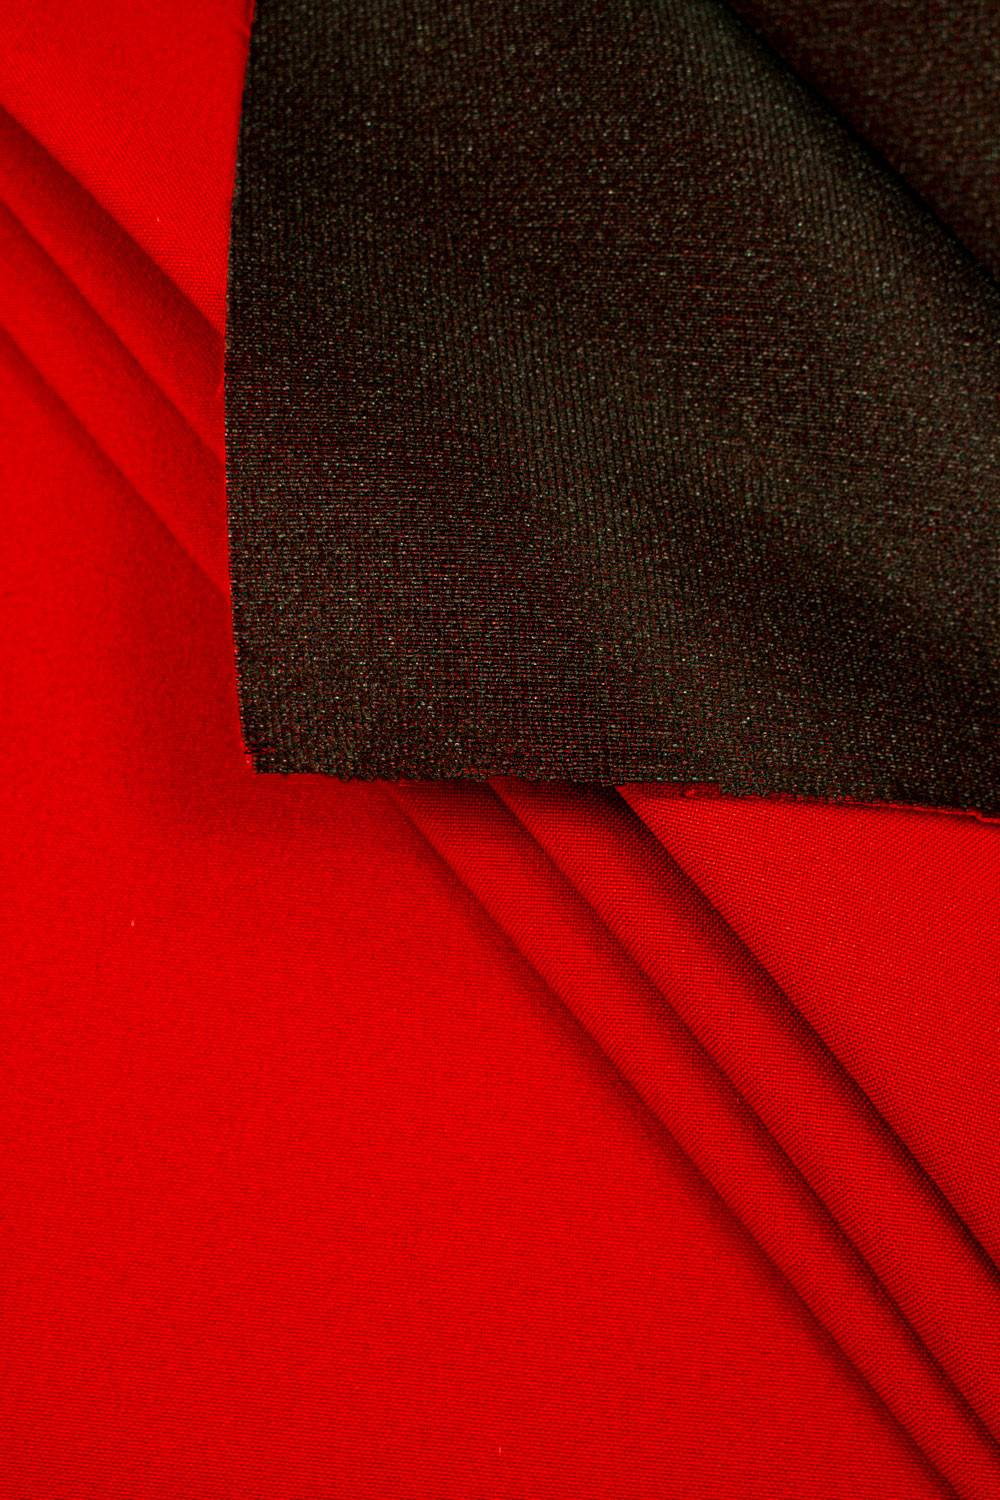 Fabric - Stretch on foam - Red - 150 cm - 250 g/m2